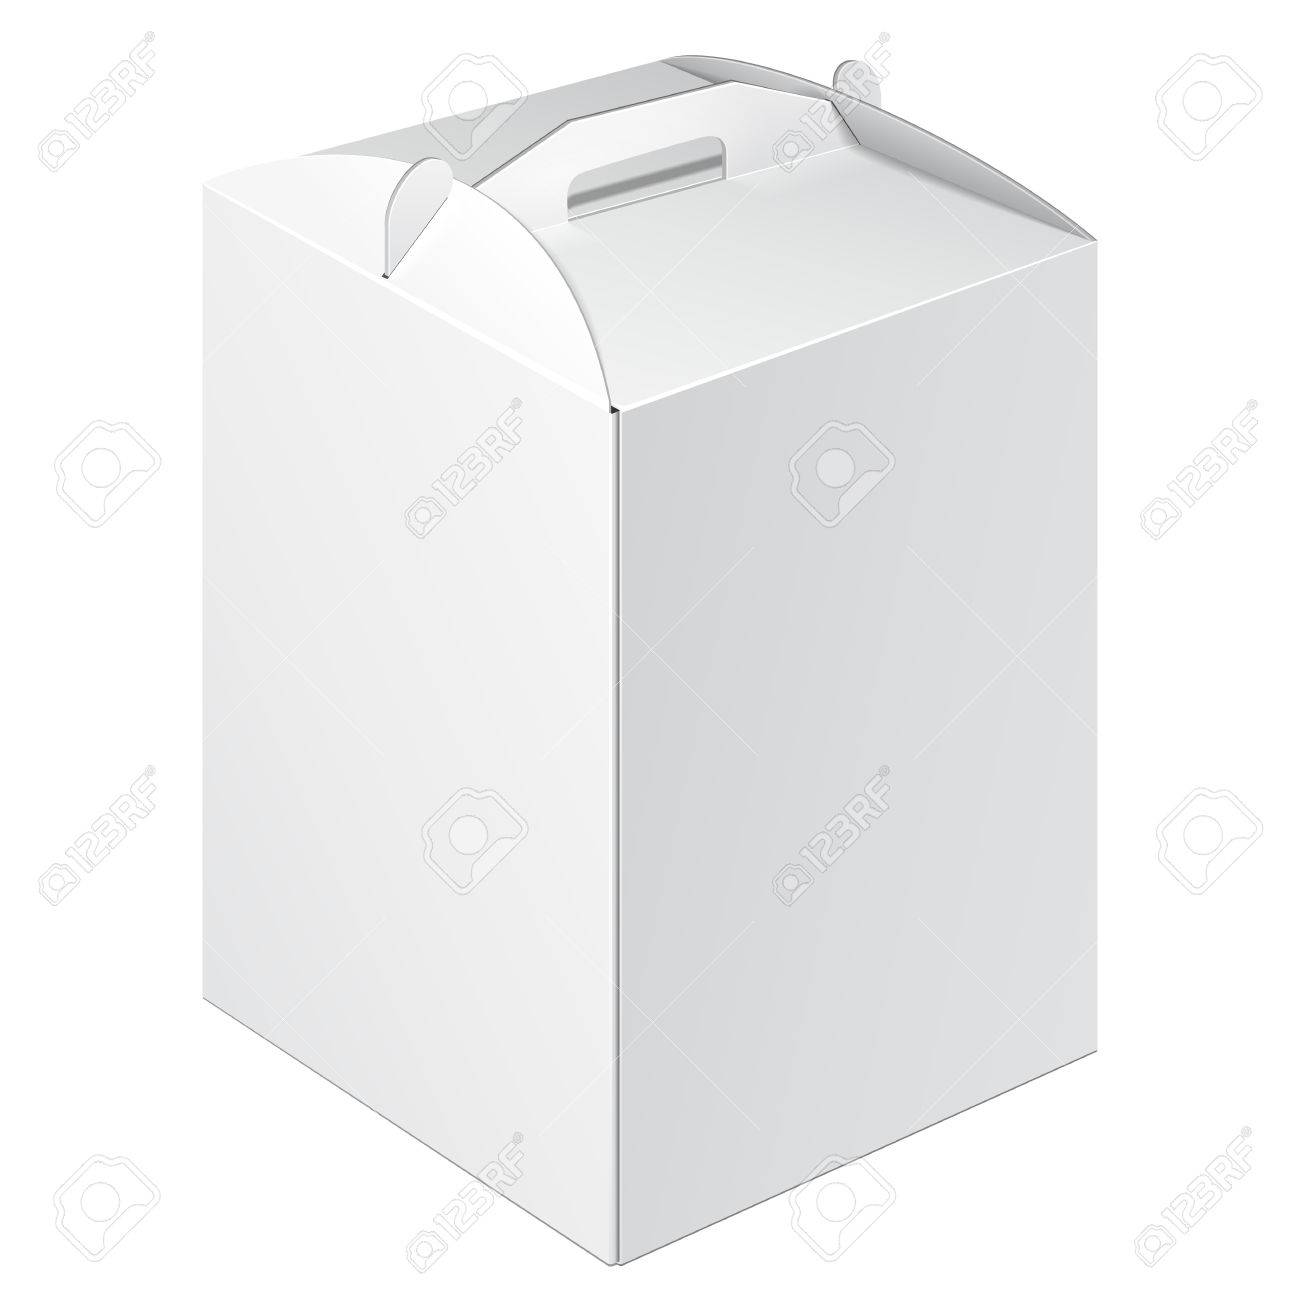 White Tall Square Cardboard Cake Carry Box Packaging For Food ...